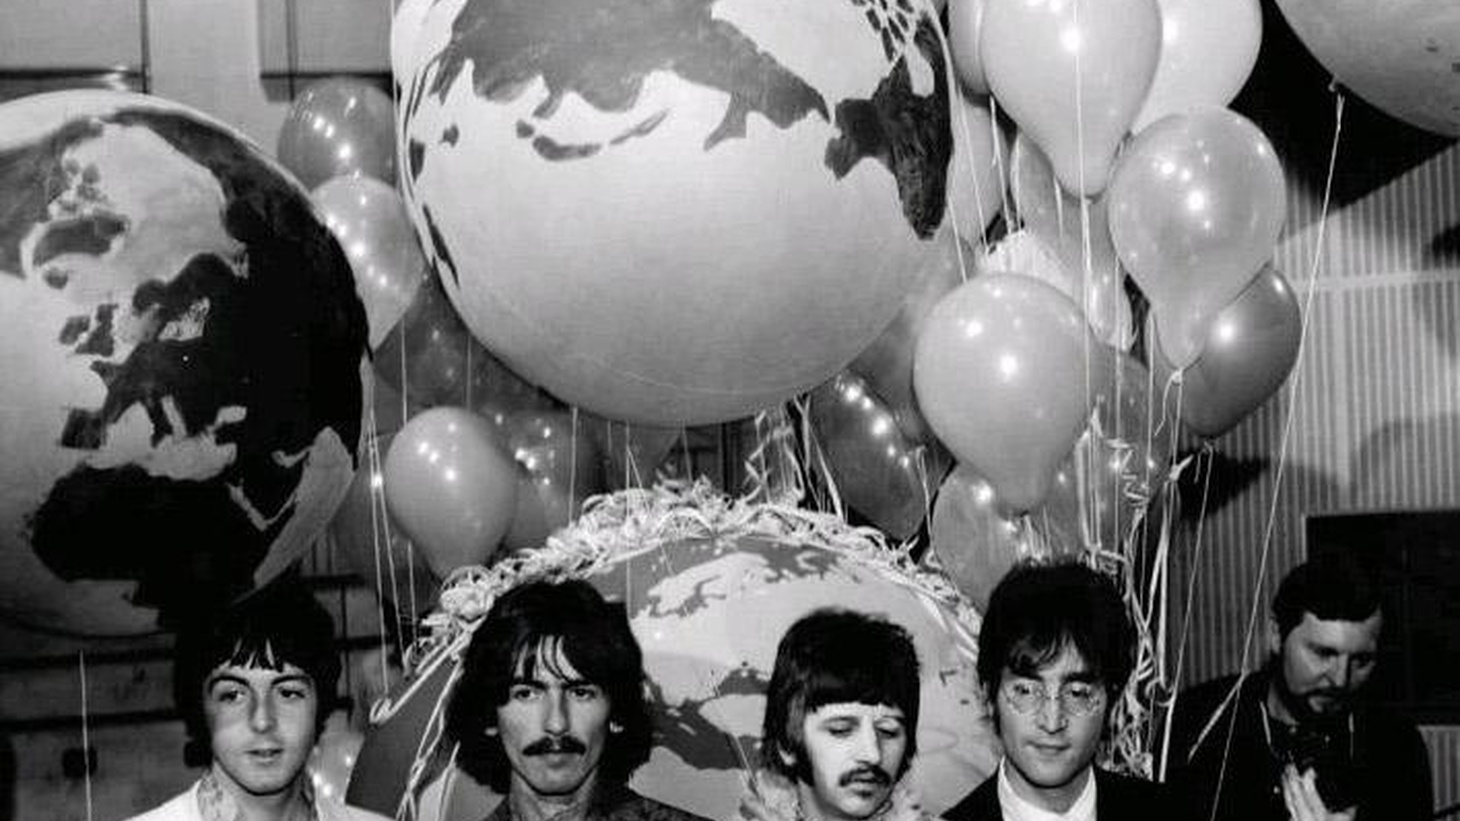 Today, on the ninth day, of the ninth month, in 2009, The Beatleshave once again invaded. This time, the landing pad is the world stage, with multiple massive Beatles releases...